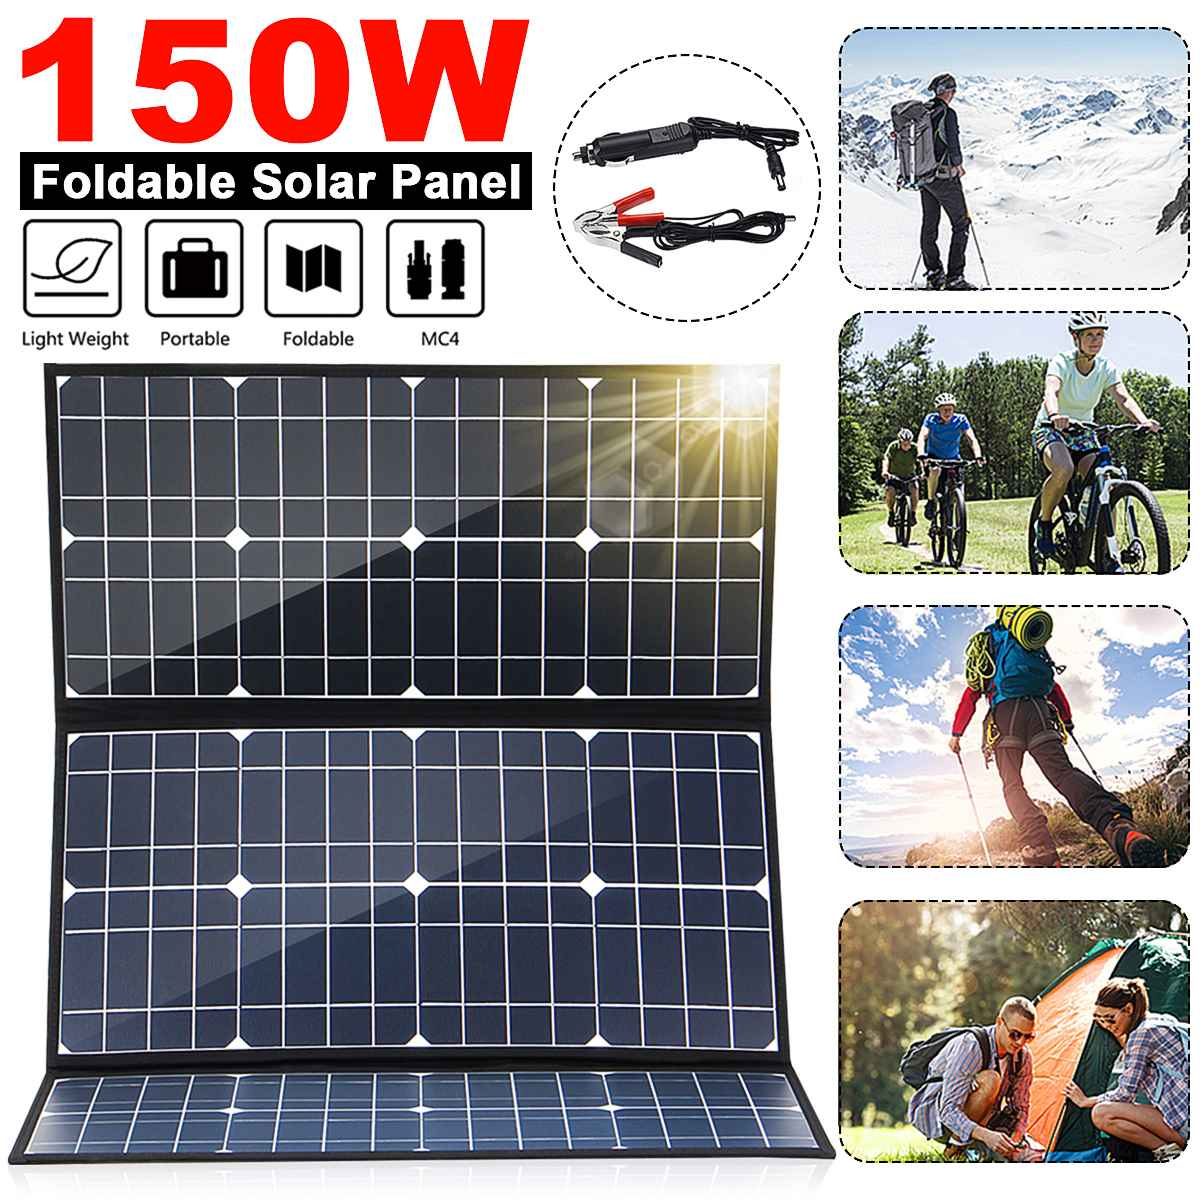 Foldable <font><b>150W</b></font> 18V <font><b>Solar</b></font> <font><b>Panel</b></font> Monocrystalline <font><b>Solar</b></font> Cells 5V USB 12V DC MC4 For Camping/Boat/RV/Travel/Home image